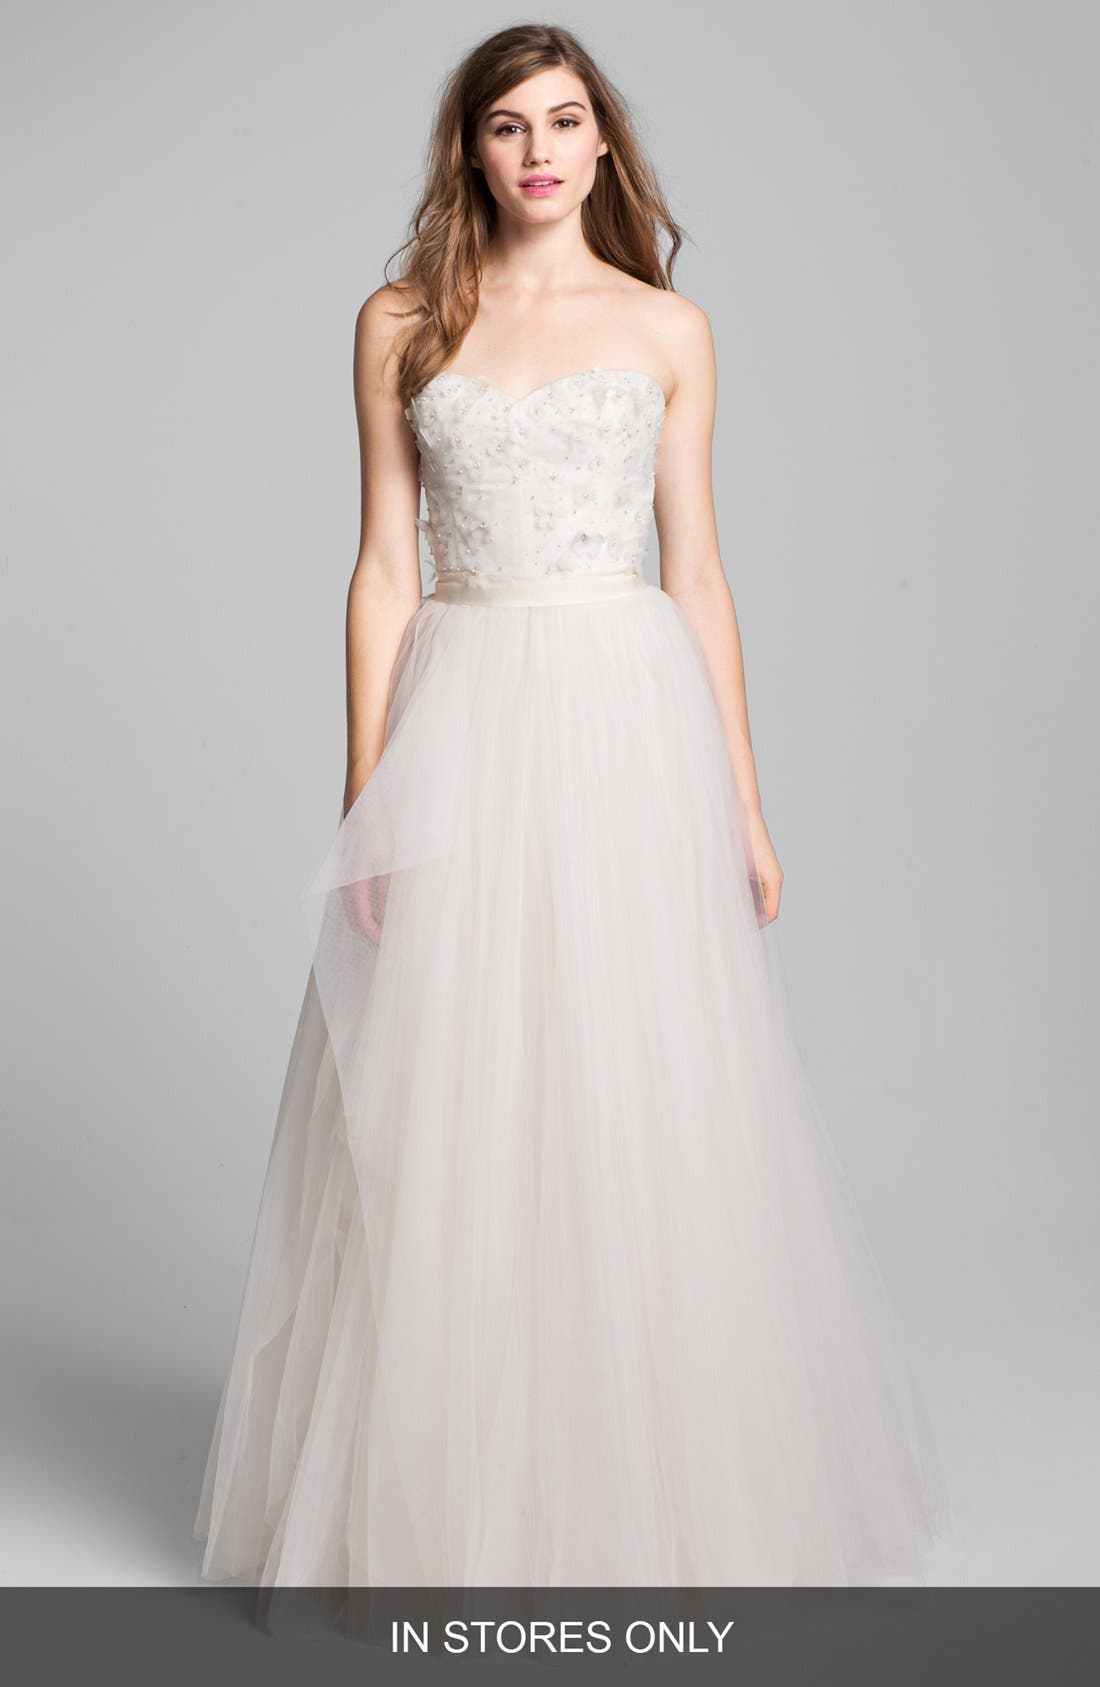 Main Image - Roses by Reem Acra 'Coral Bells' Beaded Lace & Tulle Ball Gown (In Stores Only)